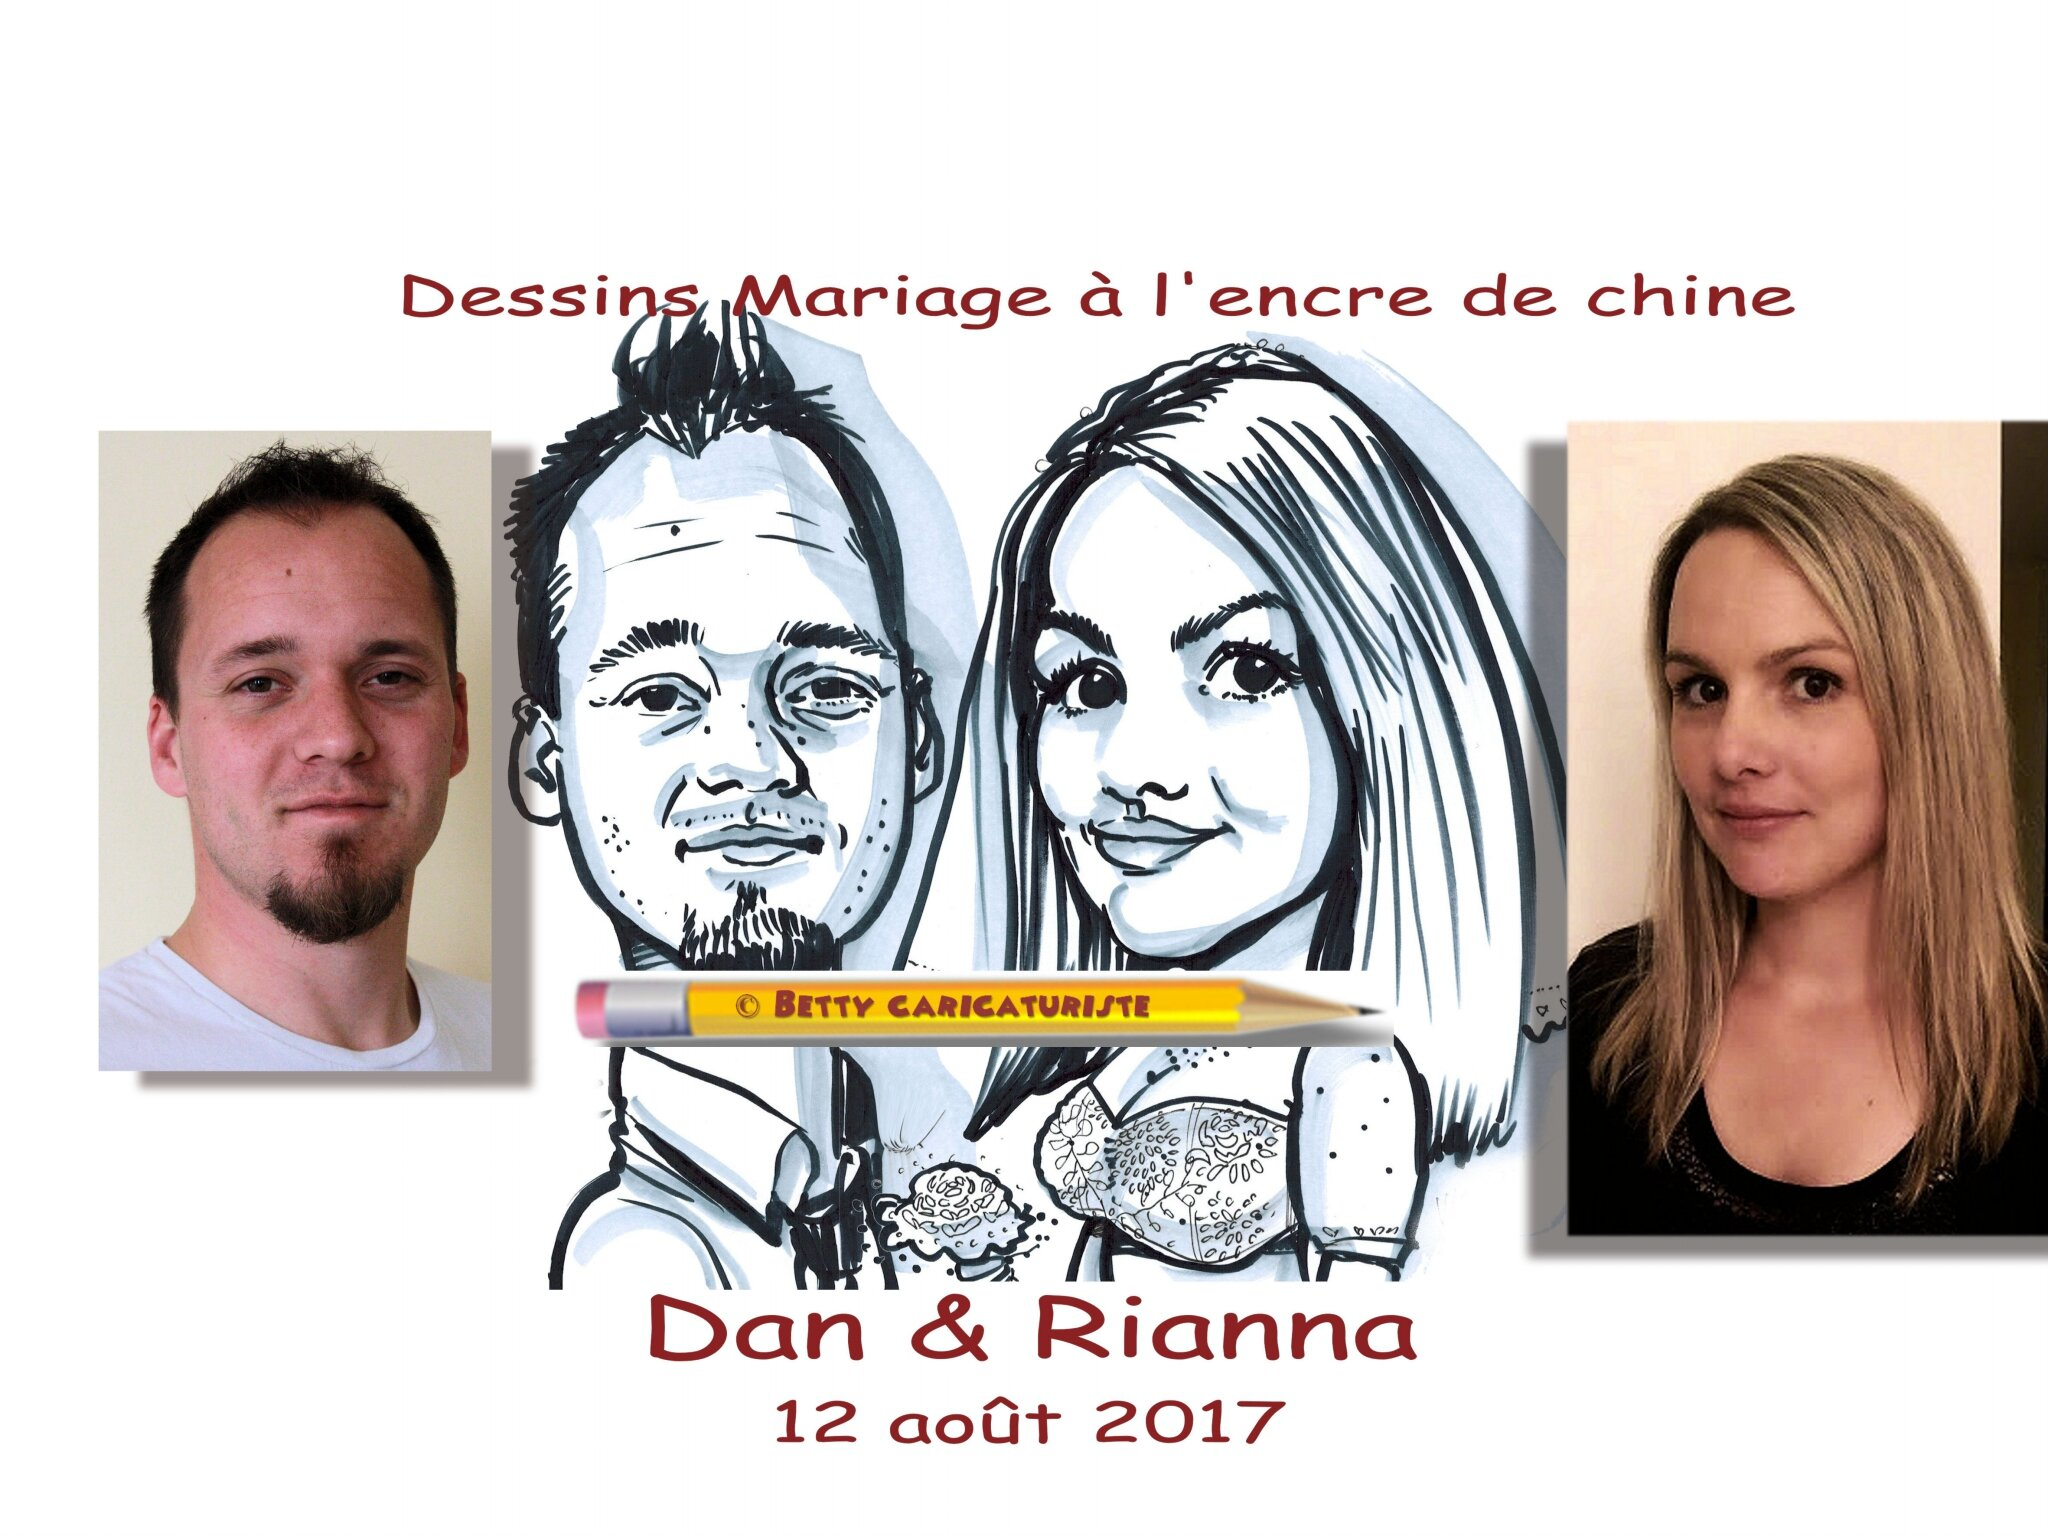 dessins de mariage imprimer drawing wedding for print betty caricaturiste - Caricaturiste Mariage